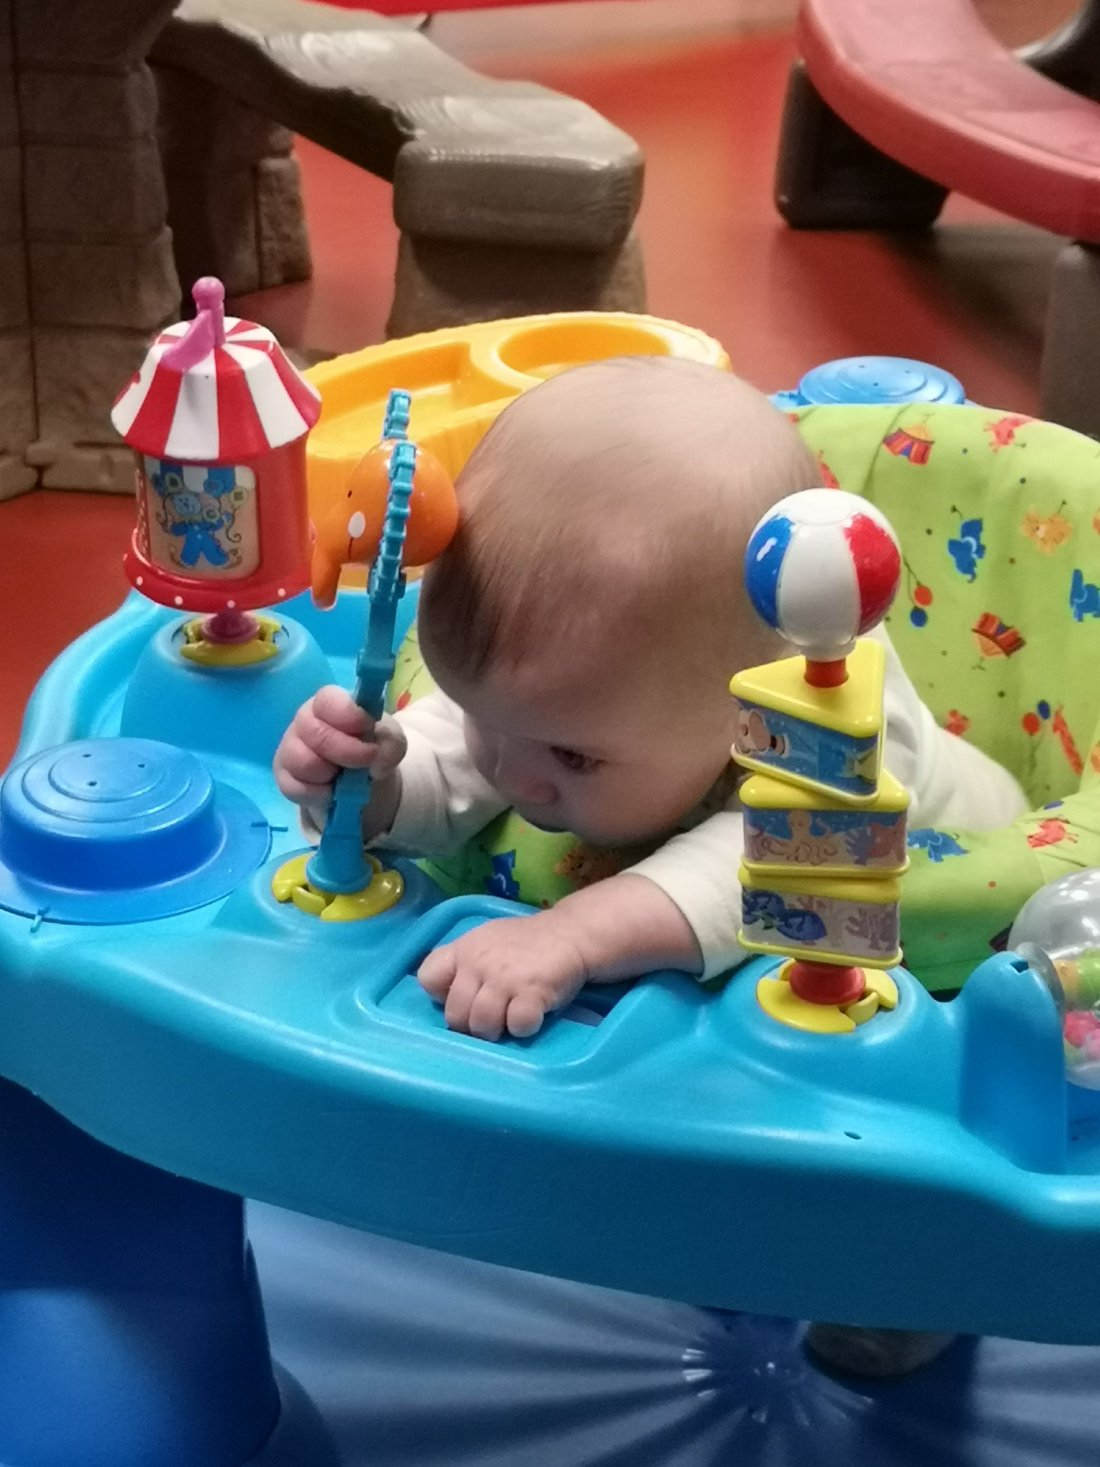 Baby in play toy trying to eat toys.